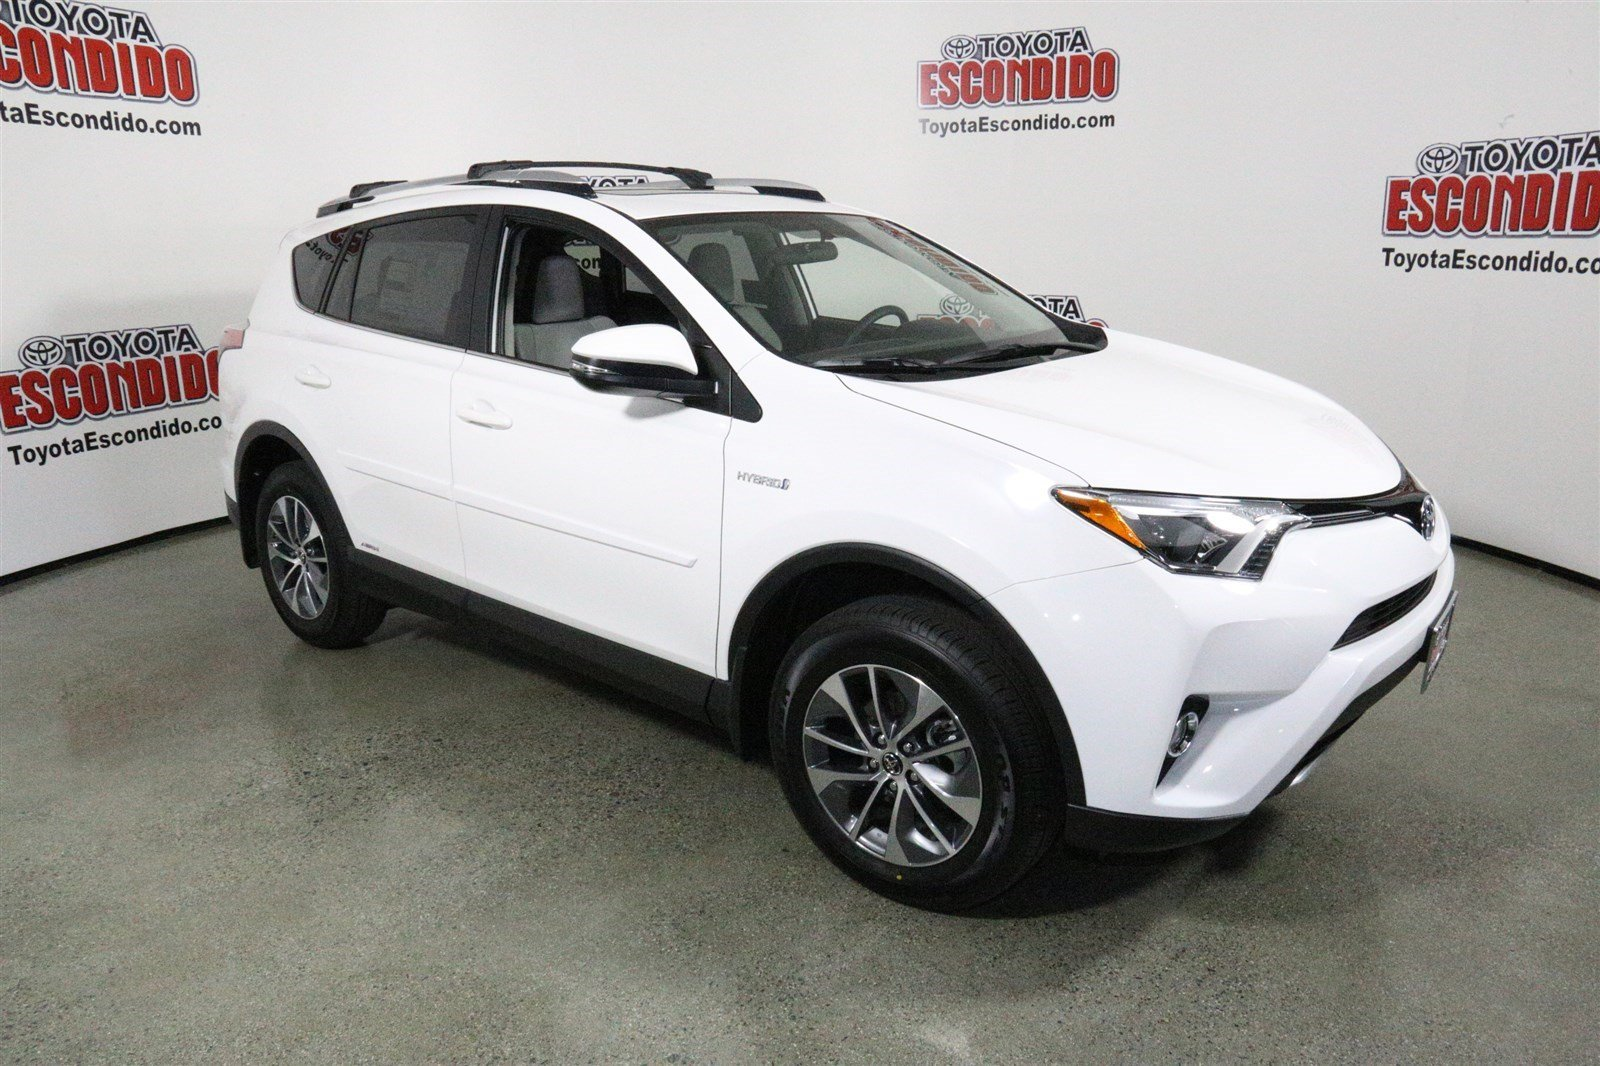 new 2017 toyota rav4 hybrid xle sport utility in escondido hd076969 toyota of escondido. Black Bedroom Furniture Sets. Home Design Ideas